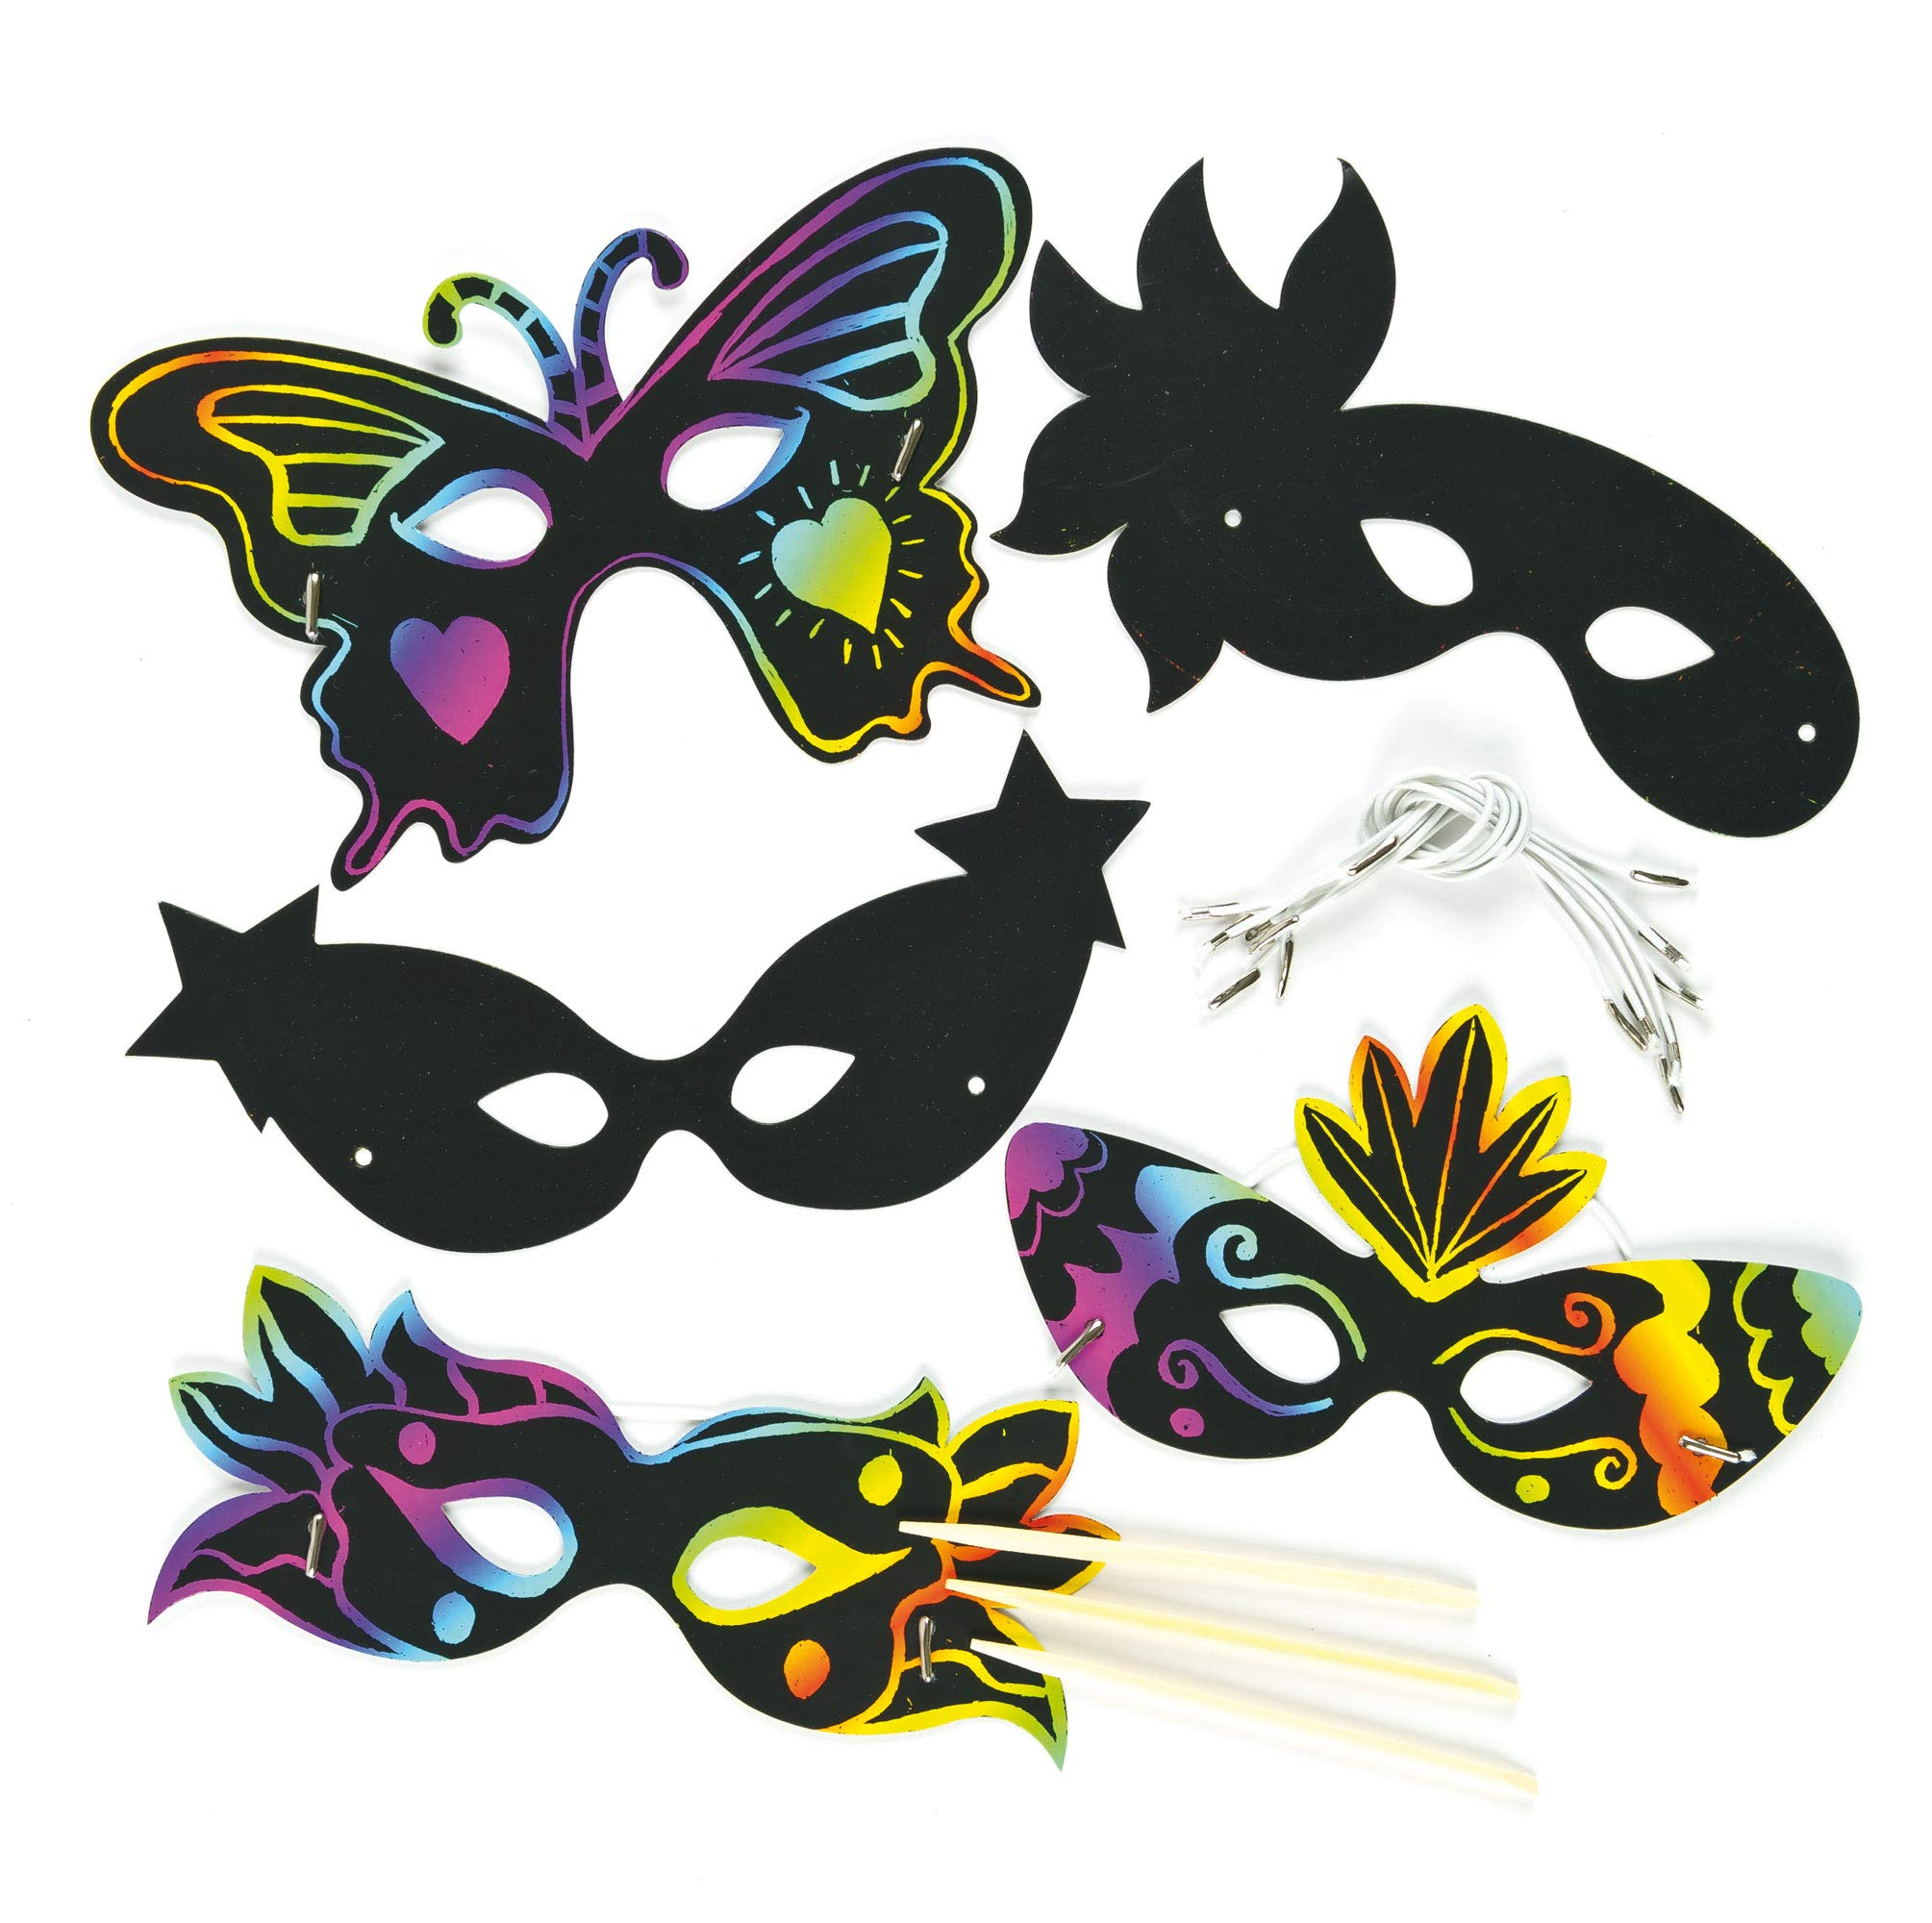 Baker Ross Carnival Scratch-Off Art Eye Mask   Wearable Decoration Kits   Magic Scratch Wand   Kids Fun Arts & Crafts Project   No Glue or Scissors Needed   Pack of 10